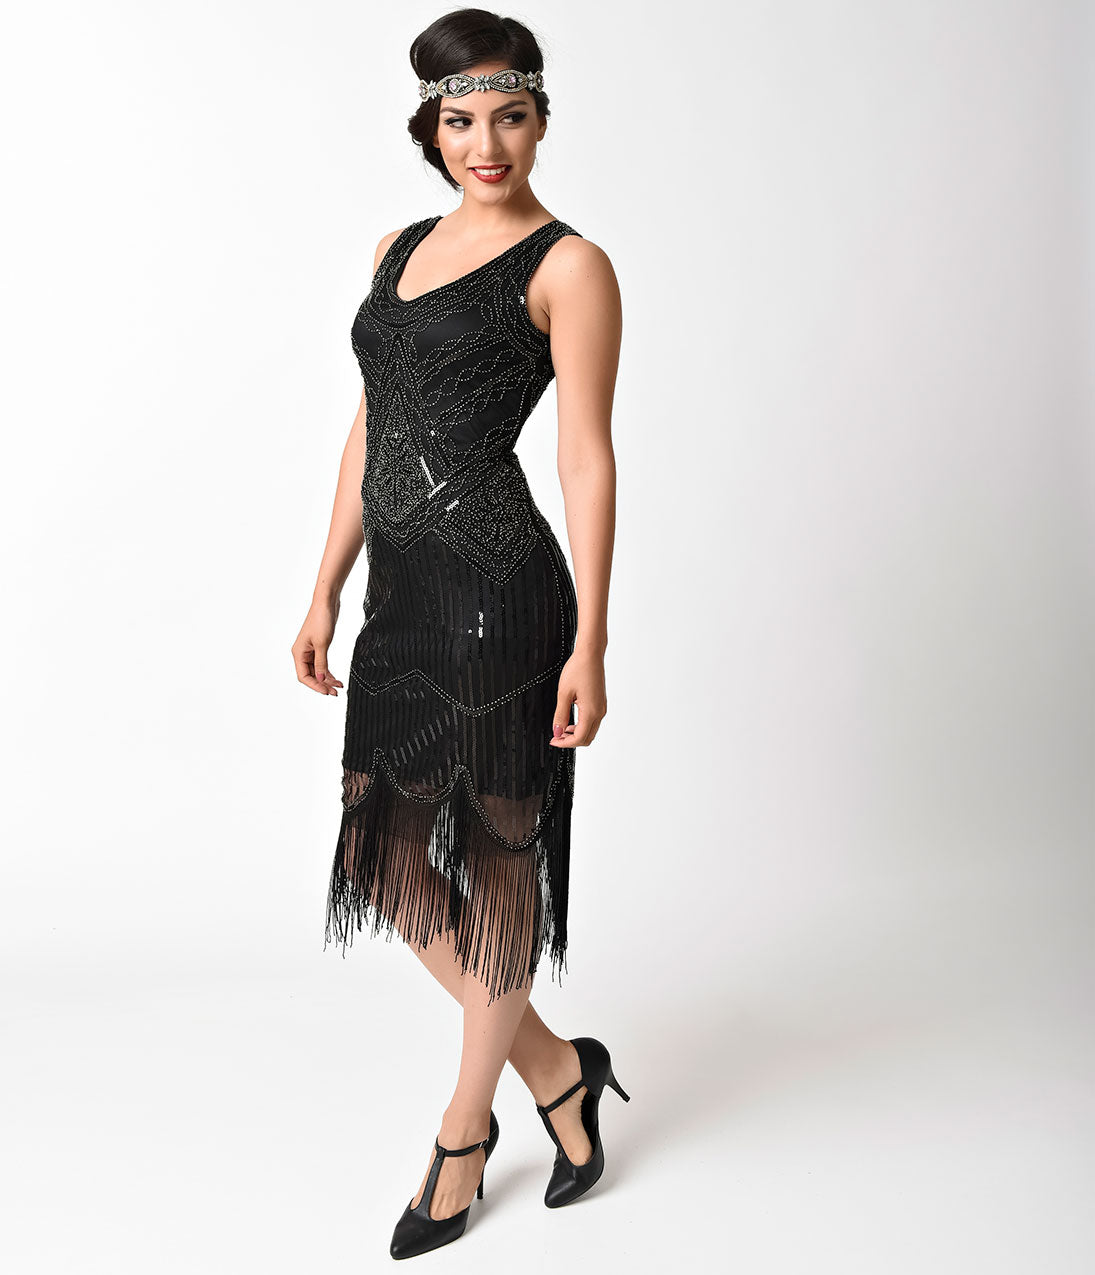 1920s Style Dresses, Flapper Dresses 1920S Vintage Style Black  Silver Beaded Sleeveless Fringe Flapper Dress $88.00 AT vintagedancer.com